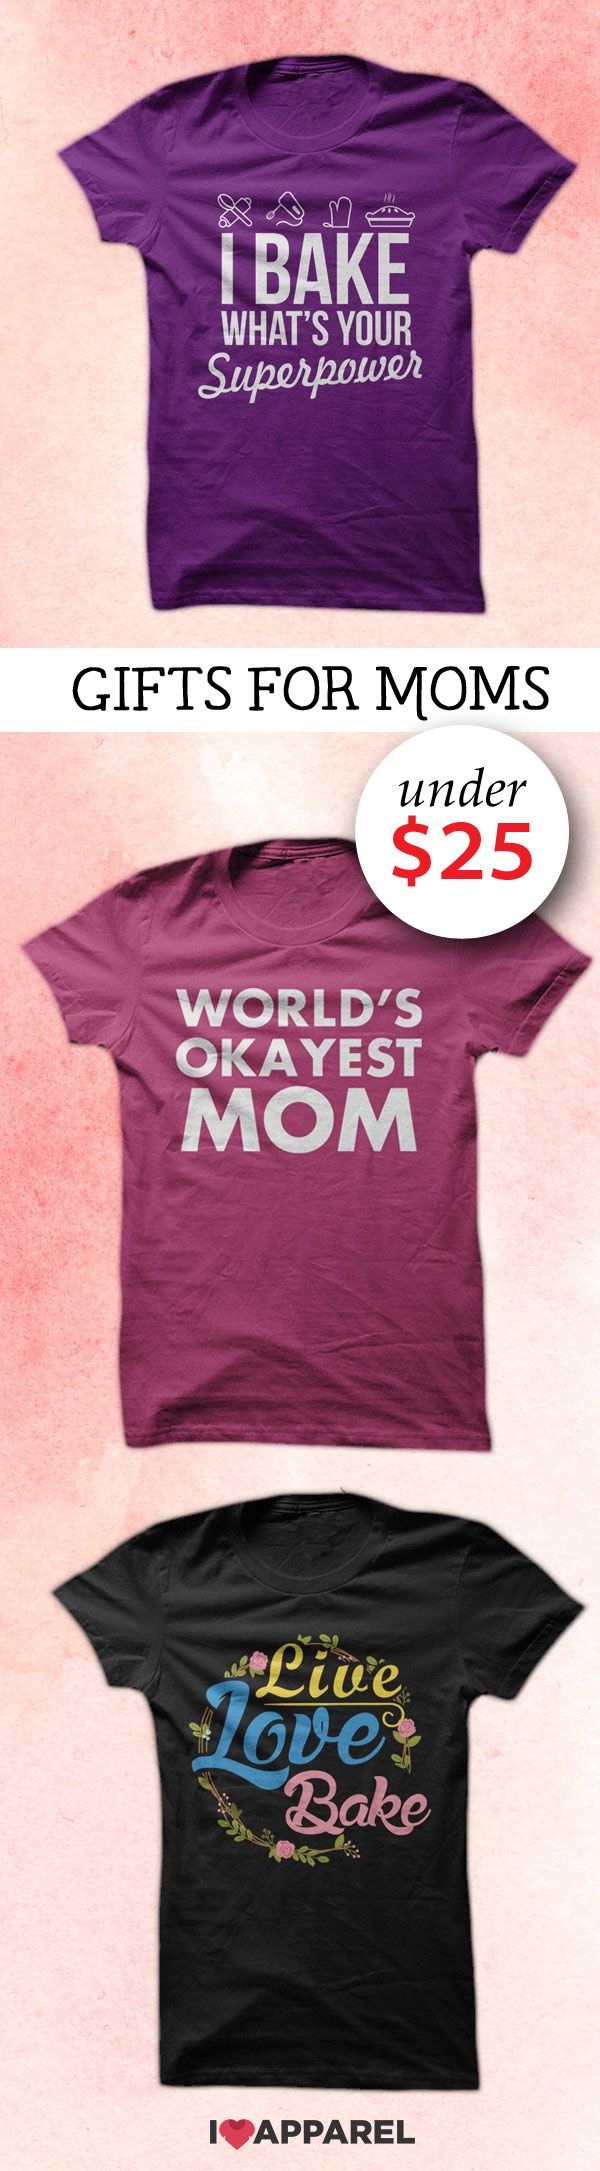 Find the perfect gift for any mom. Buy two or more items and get free US shipping.